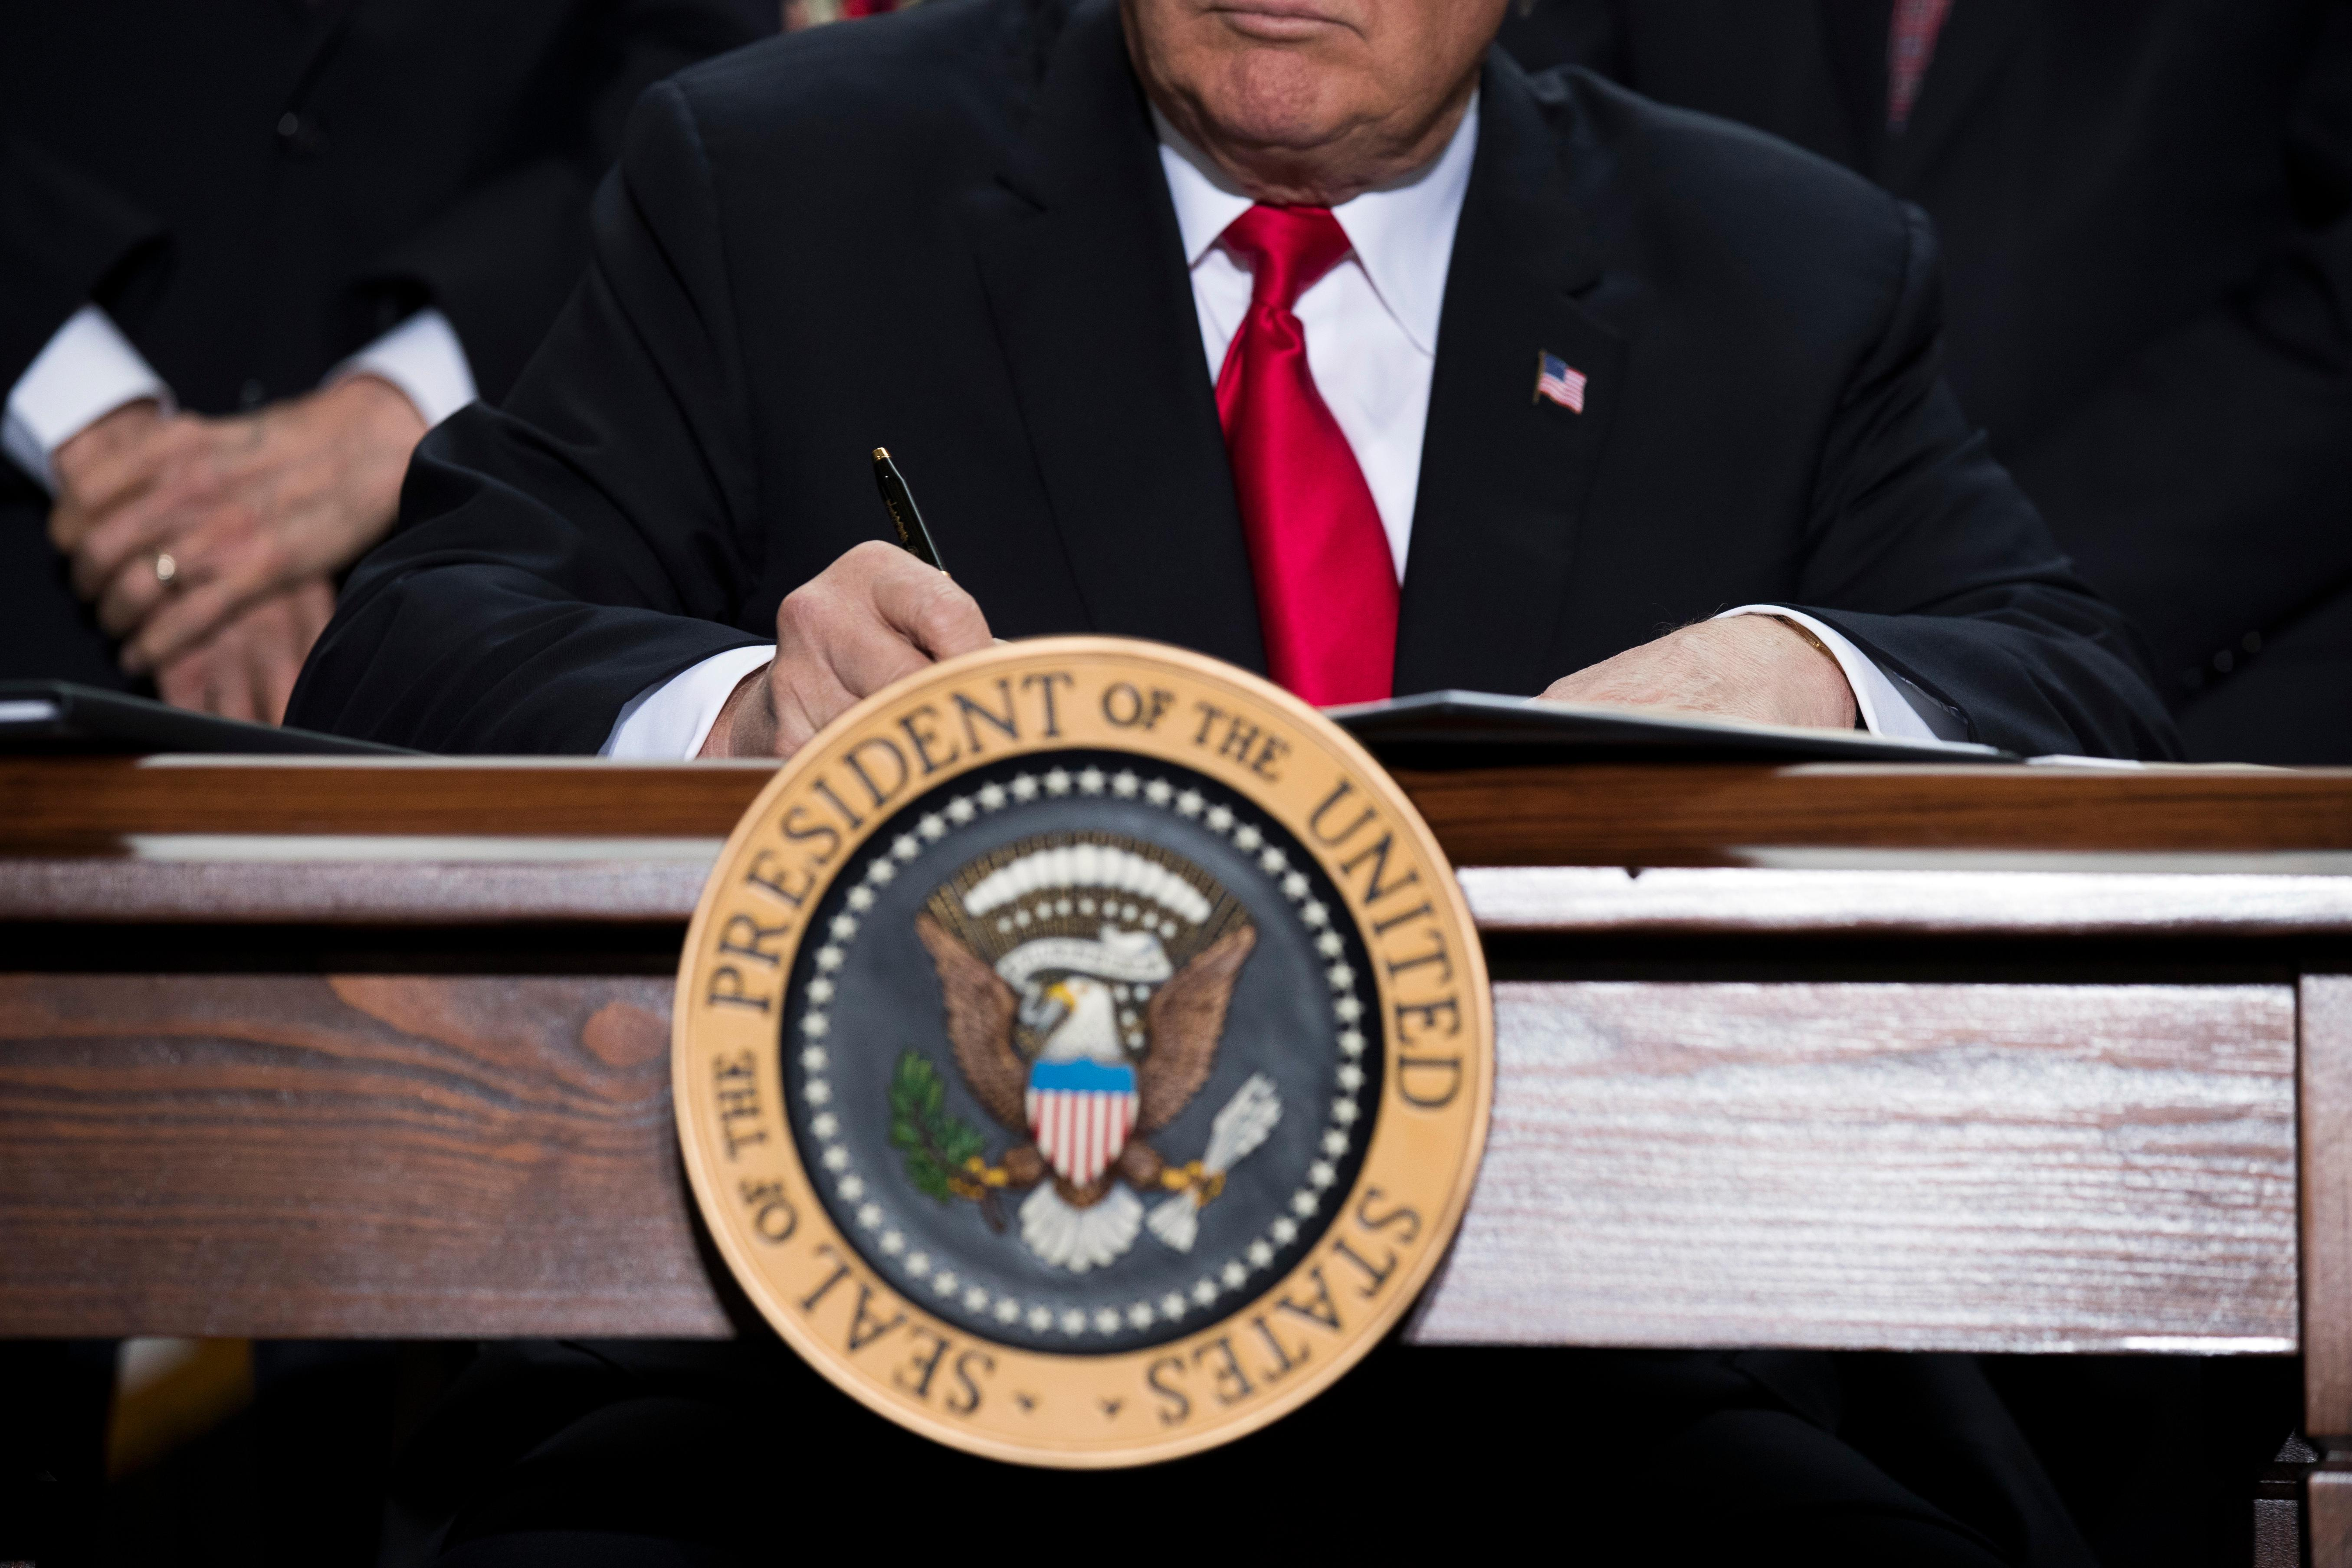 President Donald Trump signs a proclamation to shrink the size of Bears Ears and Grand Staircase Escalante national monuments, Monday, Dec. 4, 2017, in Salt Lake City. (AP Photo/Evan Vucci)